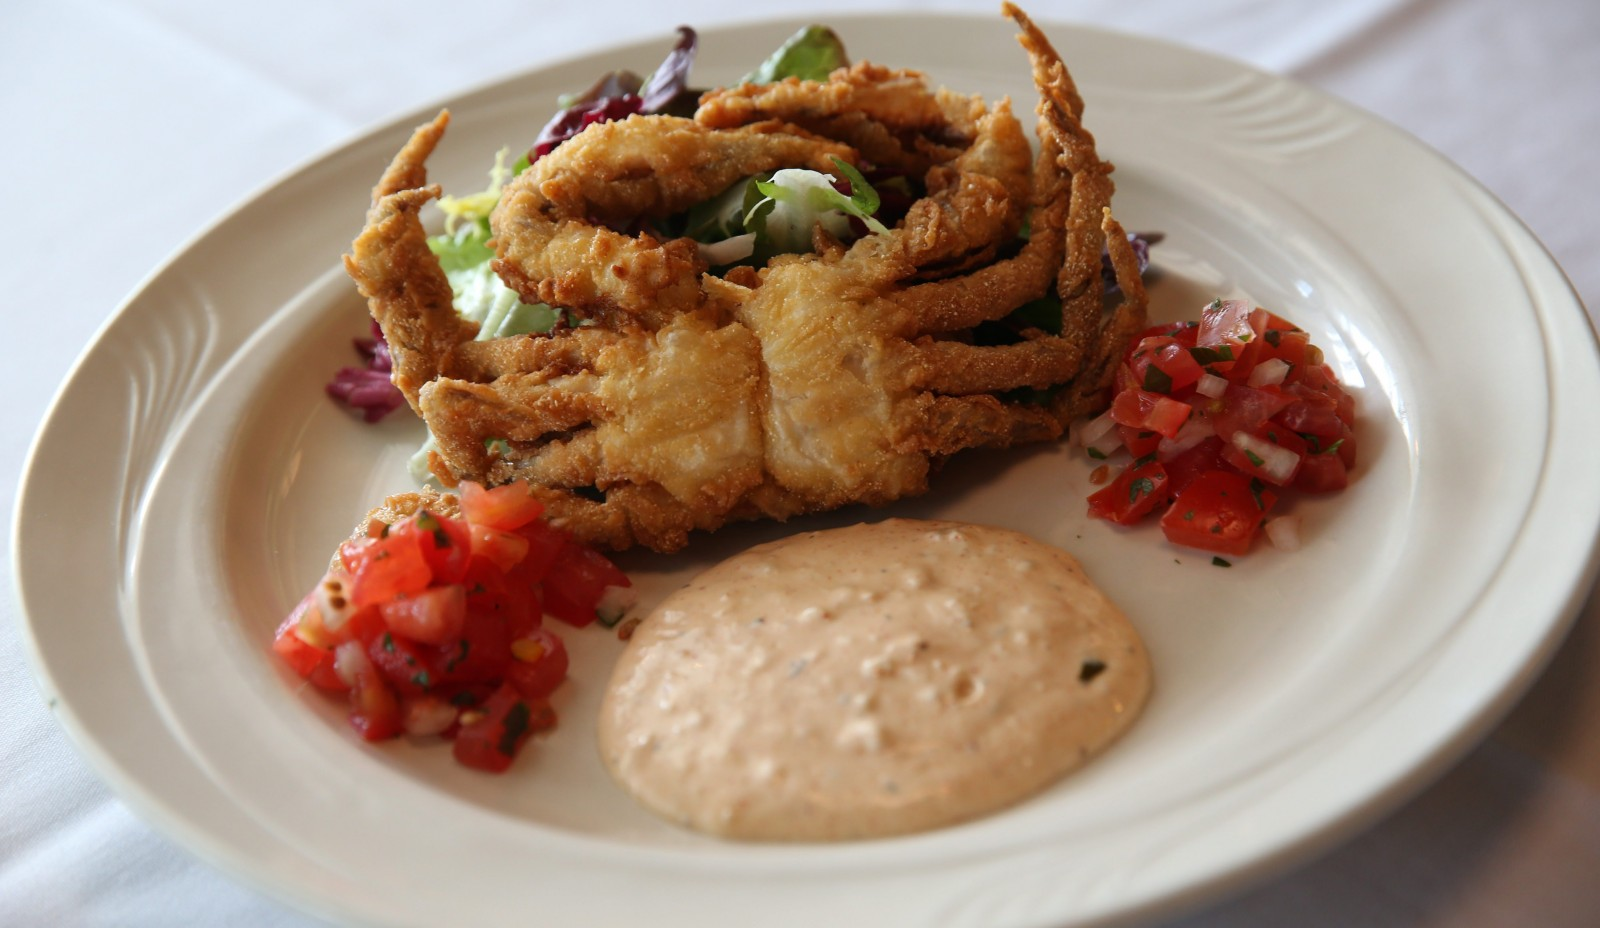 Hutch's crispy soft-shelled crab with a Cajun remoulade, market salad and pico de gallo. (Sharon Cantillon/Buffalo News file photo)